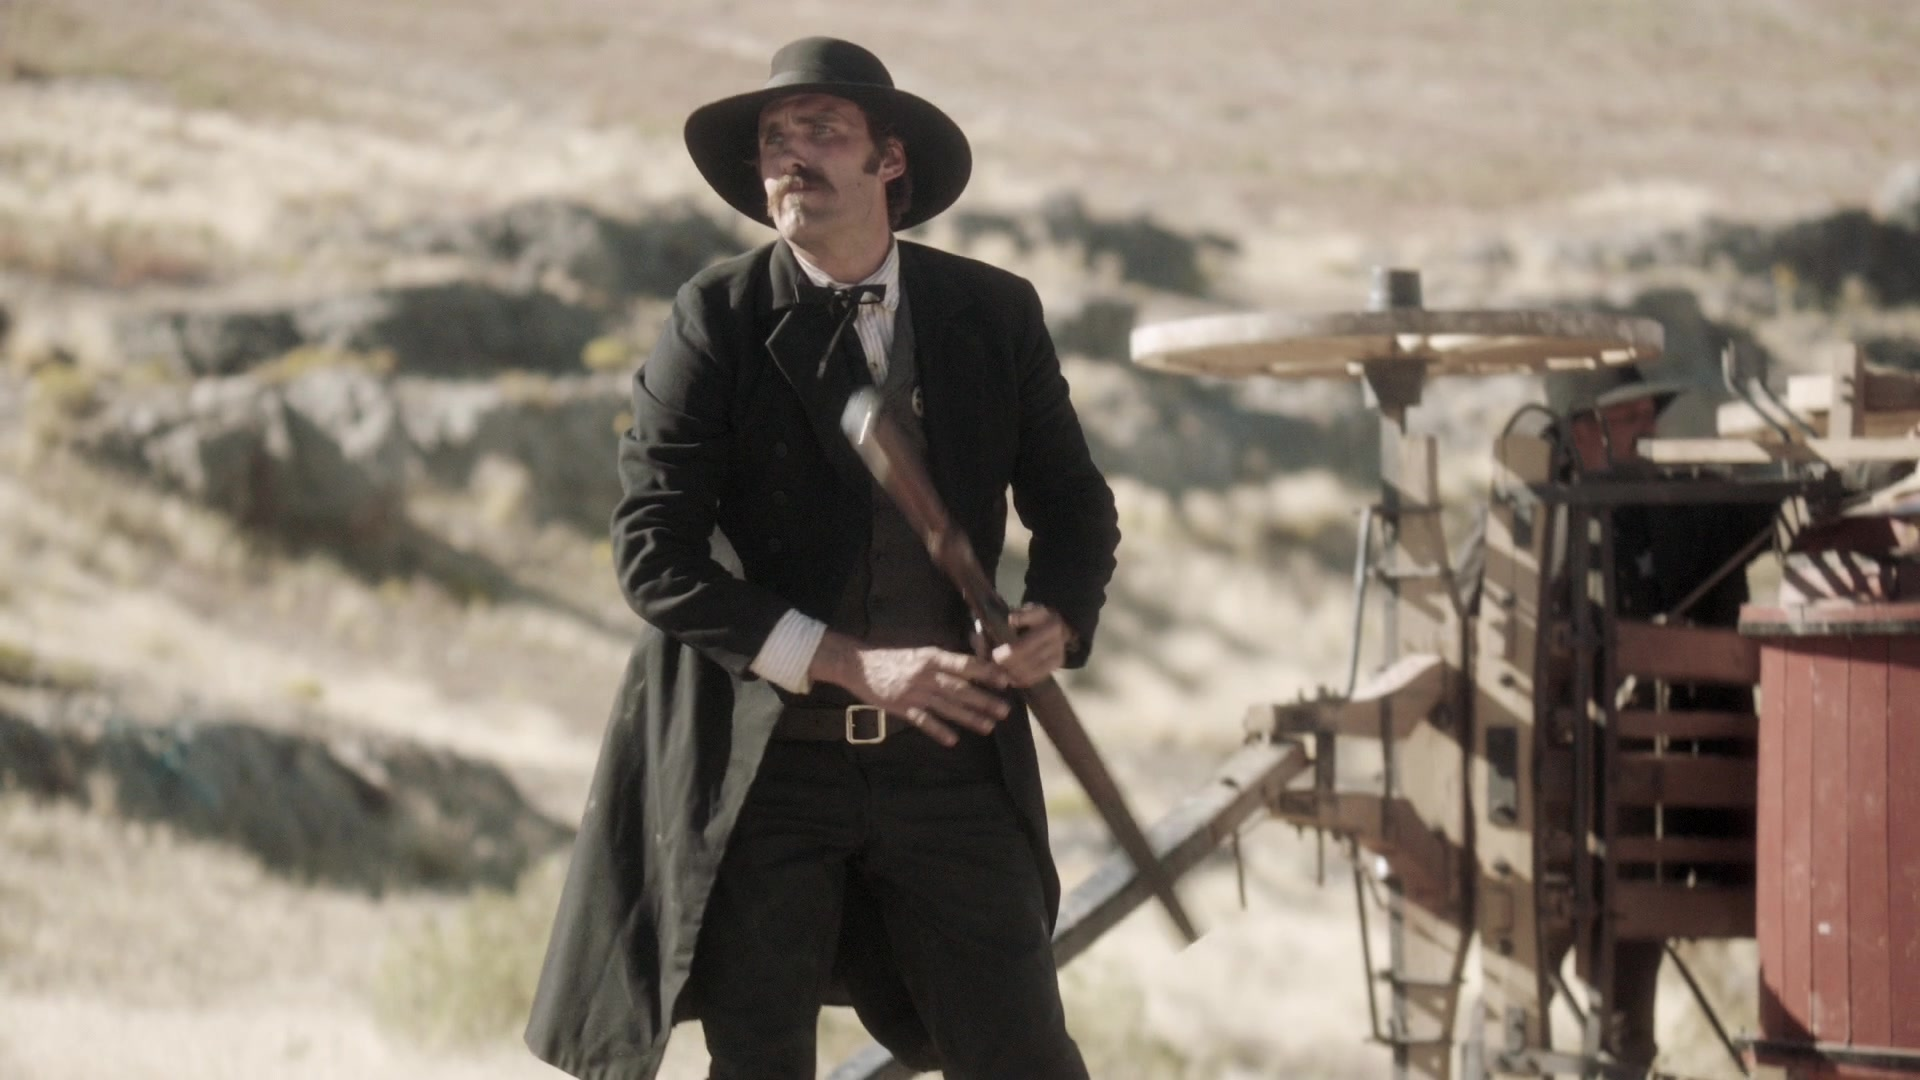 The American West S01E07